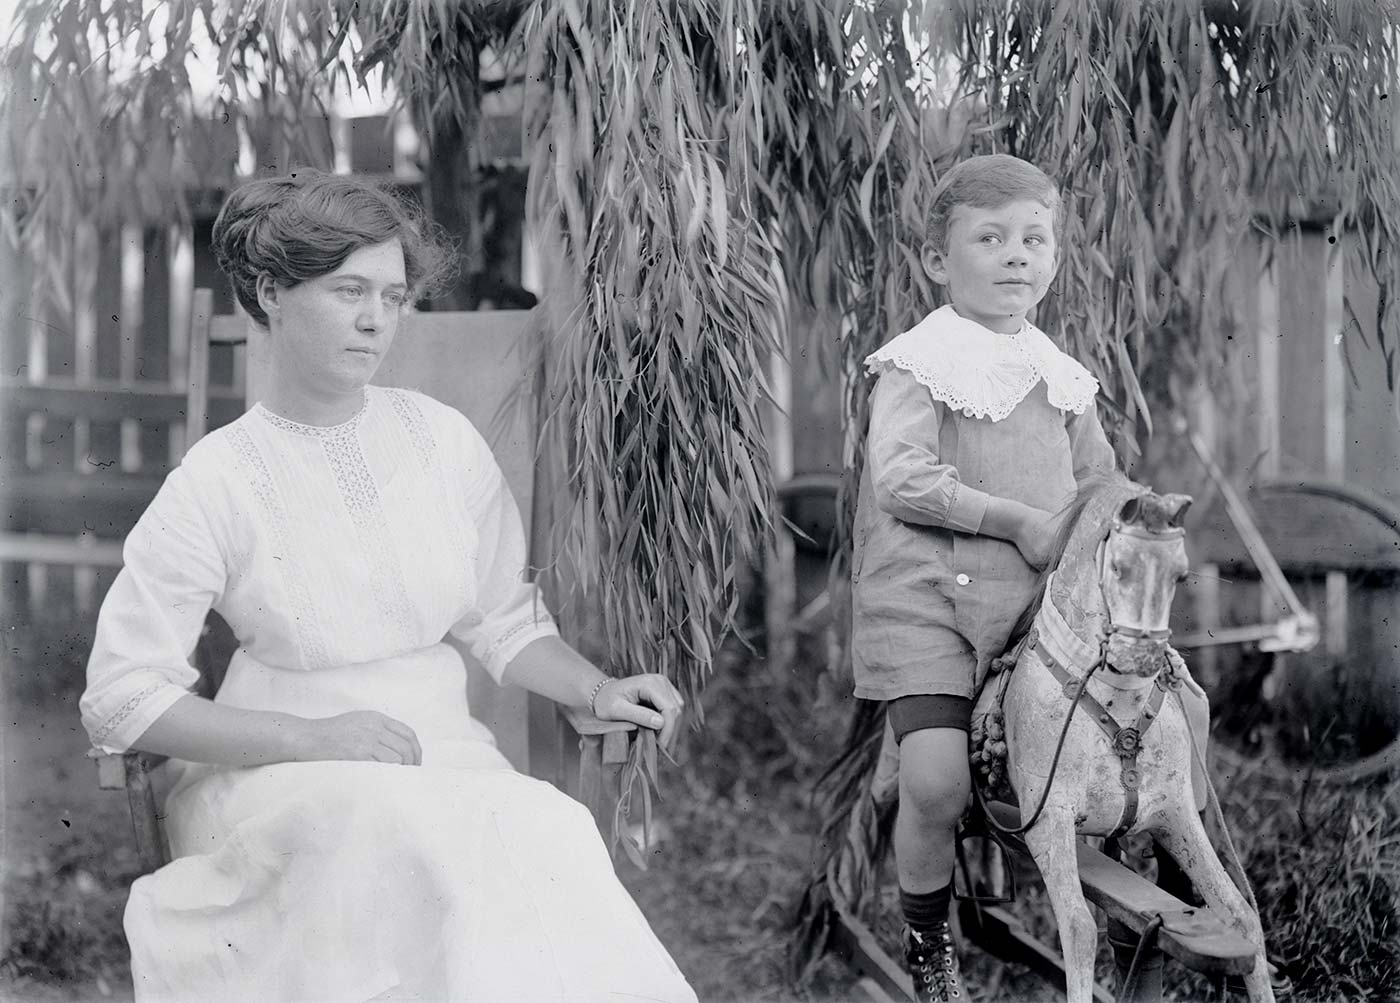 A photographic glass plate negative showing a woman sitting in a chair beside a boy riding a toy rocking horse. There is a bicycle and picket fence visible in the background. - click to view larger image